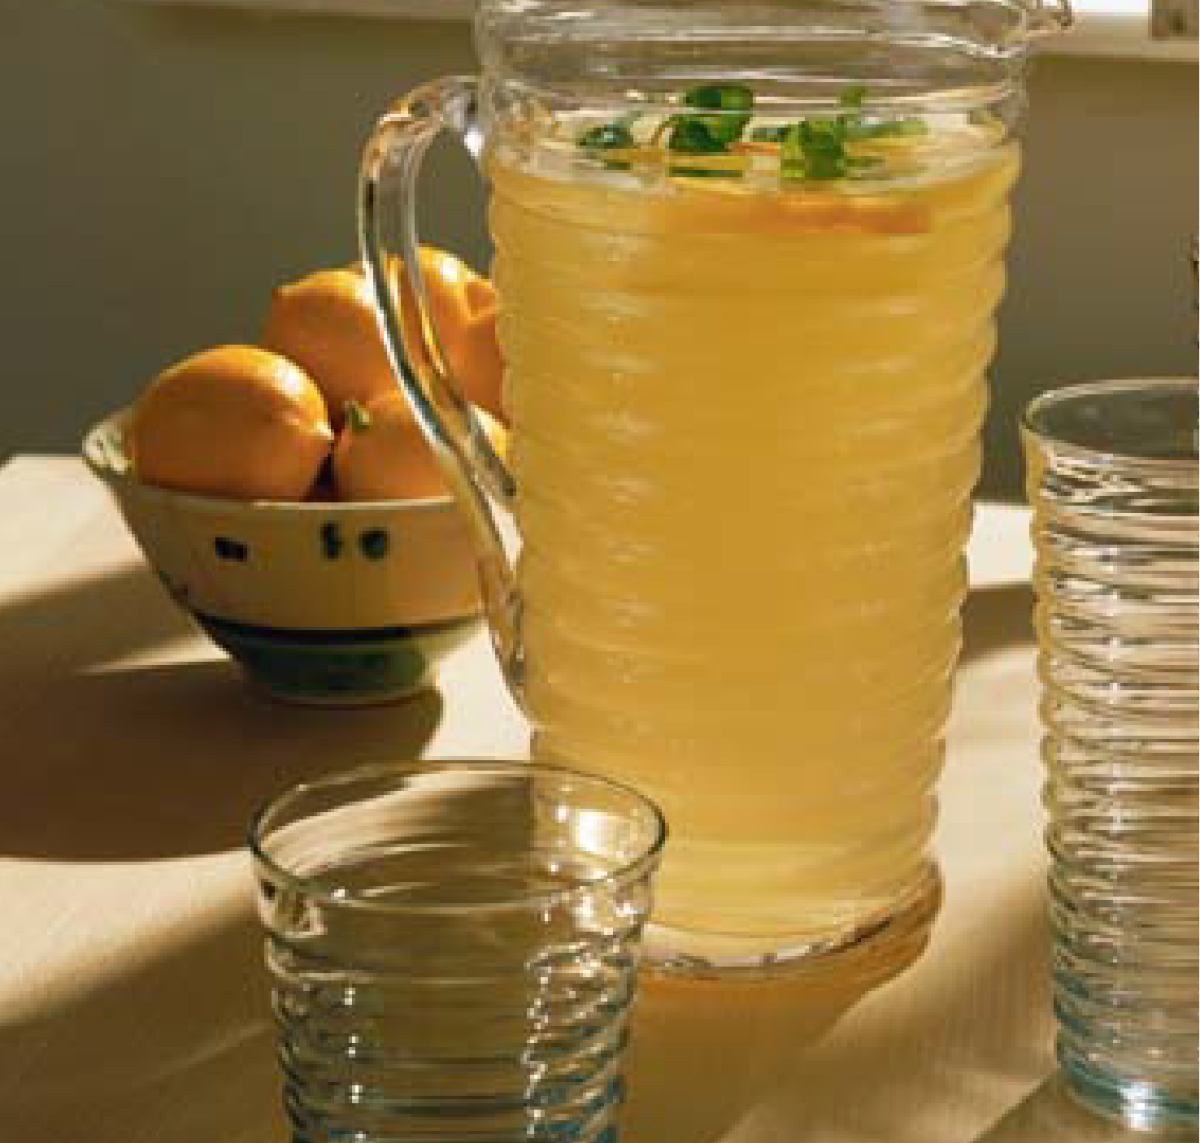 Once the pitcher was full, she added one packet of sugar-free powdered lemonade, squeezed in the juice of two lemons, then stirred in six packs of stevia.